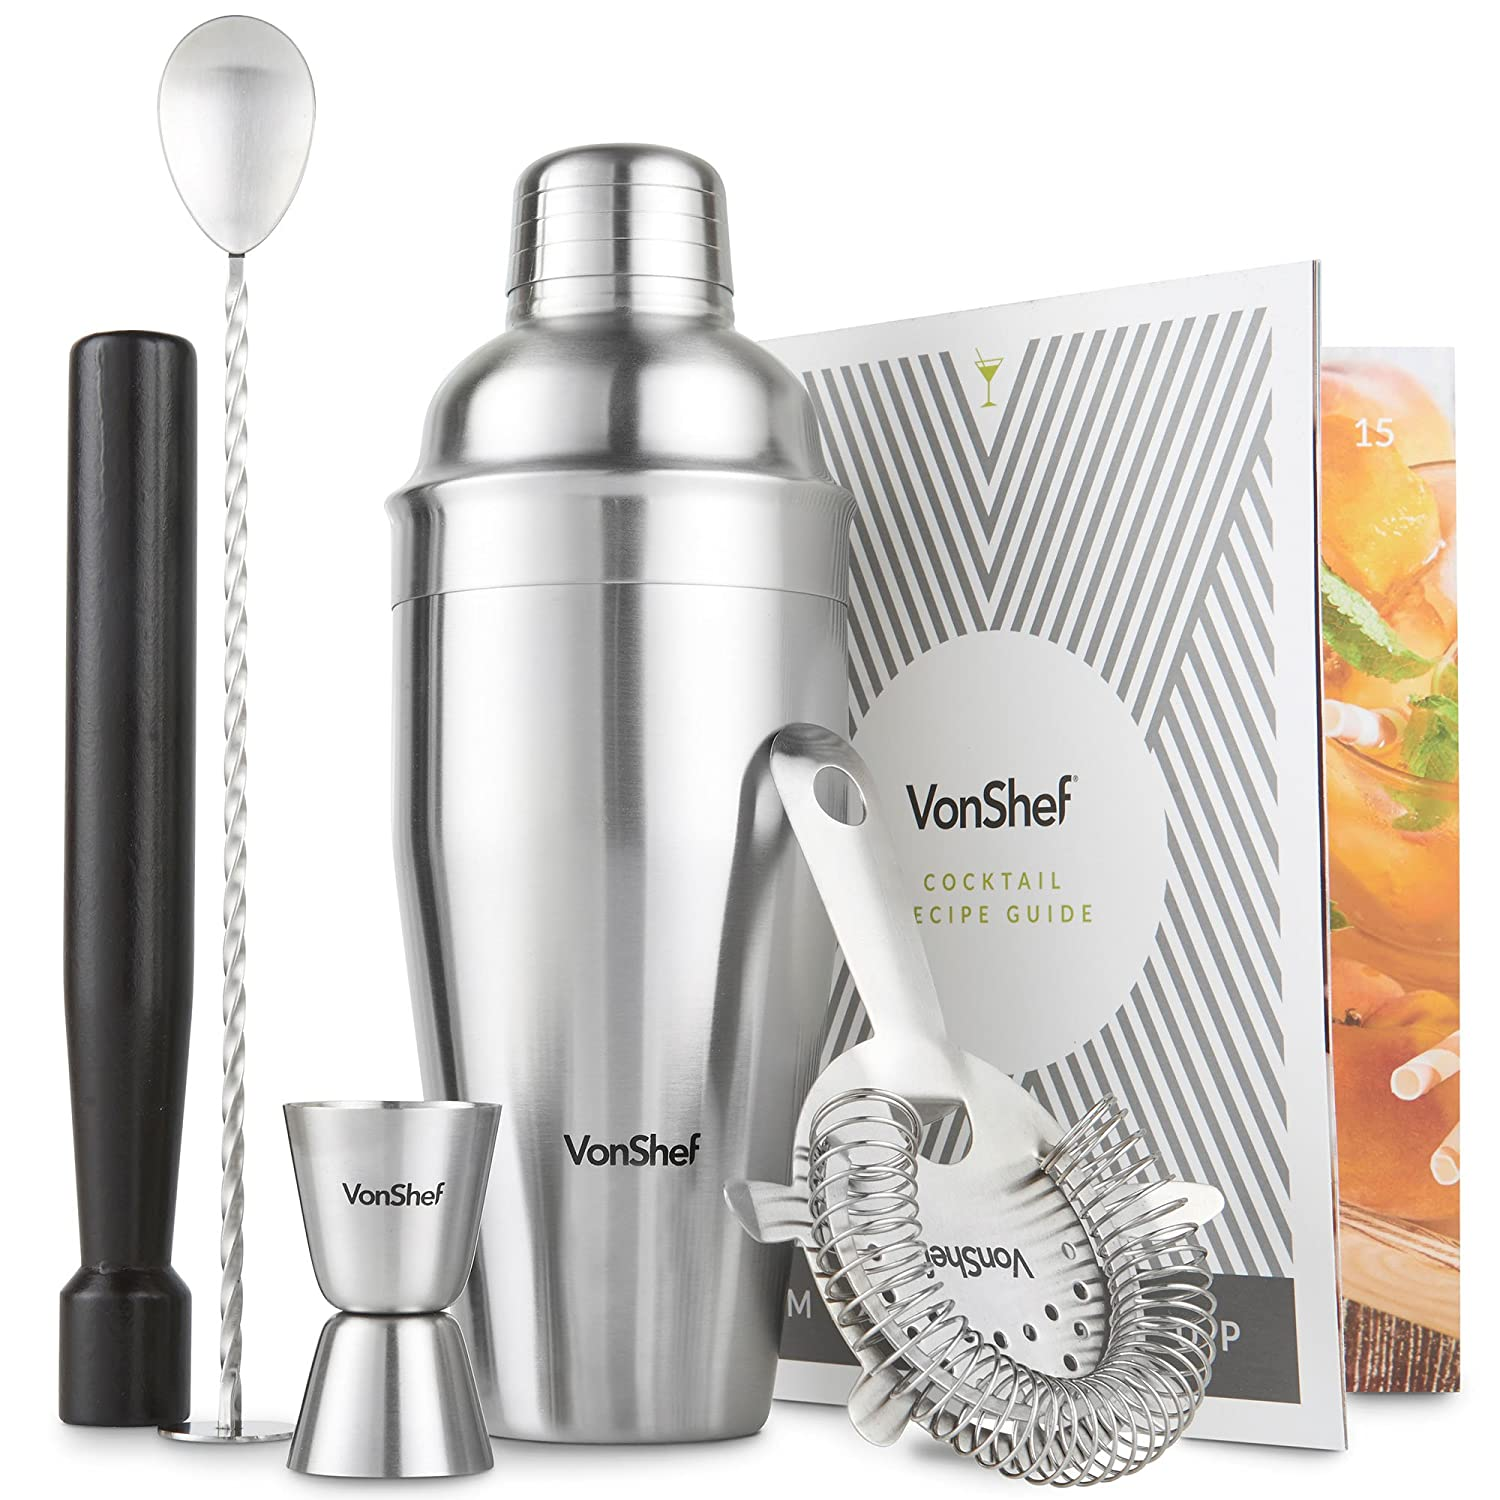 VonShef Manhattan Cocktail Shaker Set with Recipe Guide, Stainless Steel, Includes Twisted Bar Spoon, Hawthorne Strainer, 0.5 Ounce 1 Ounce Measuring Jigger, Wooden Muddler, 19 Ounce Shaker 07/754US